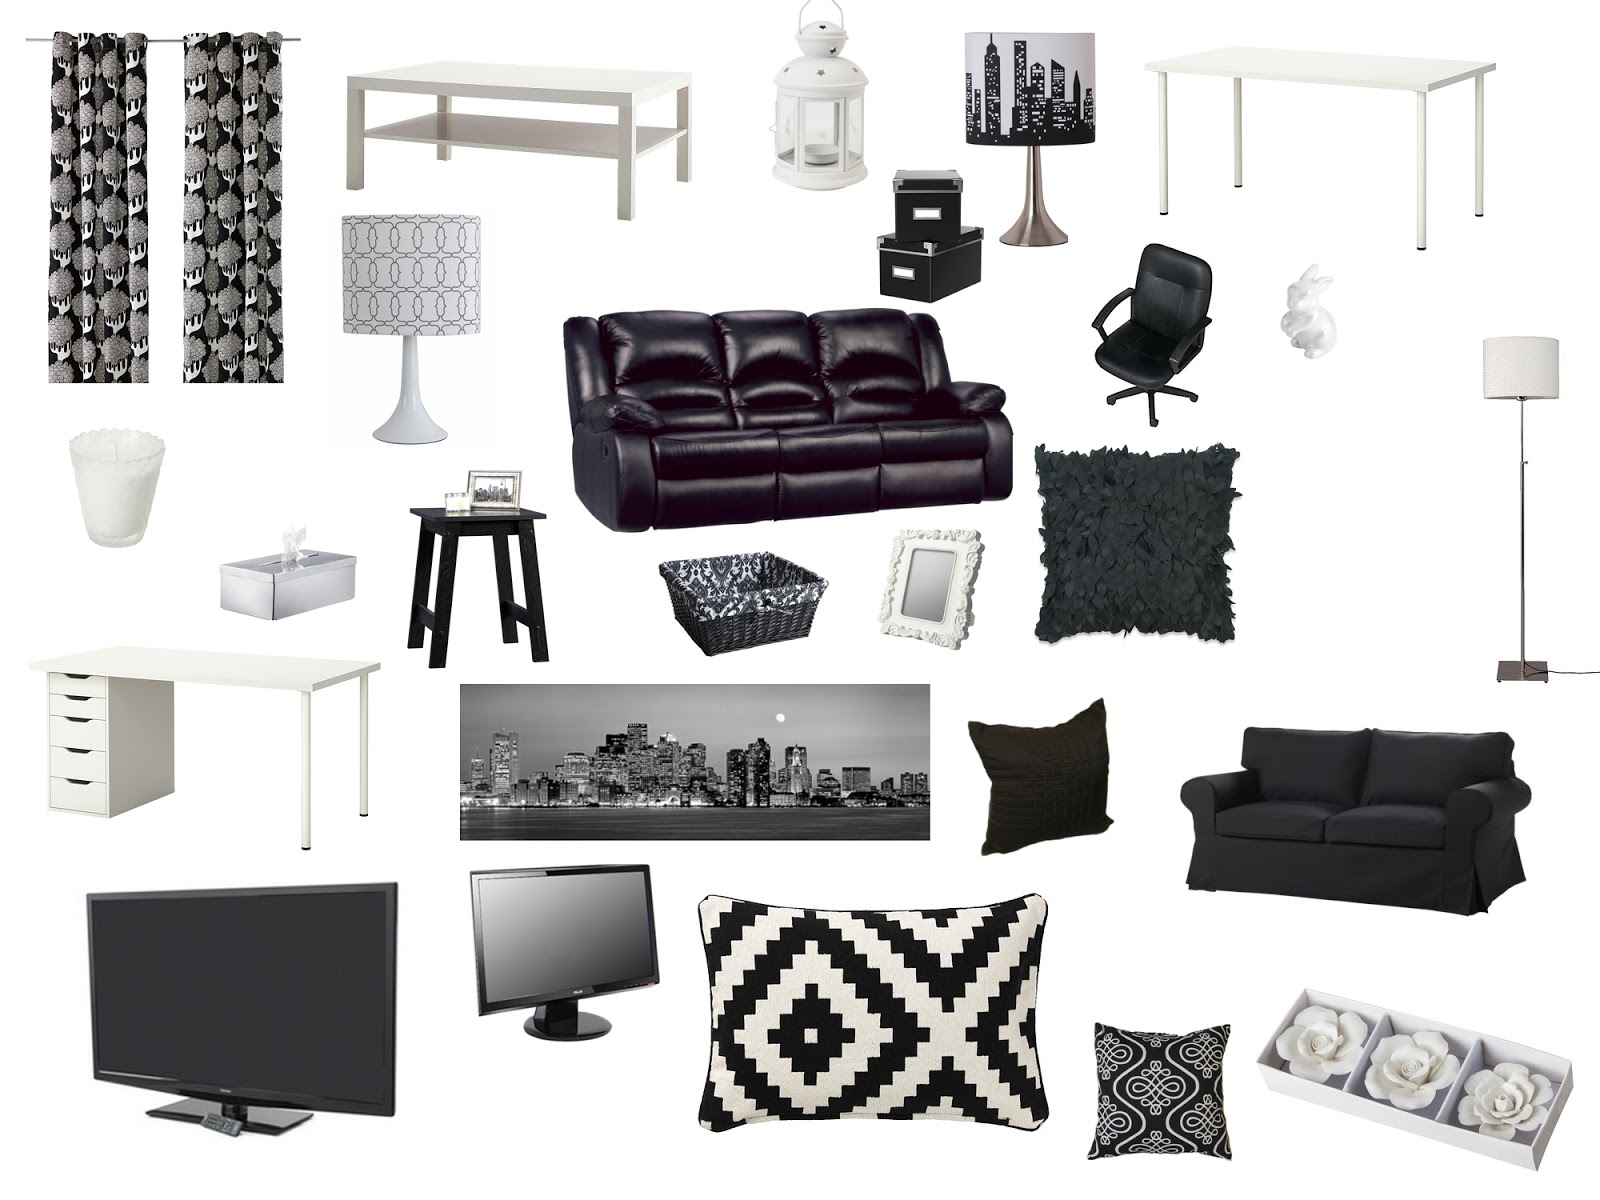 25 Black And White Glamour Decor Inspirations 26